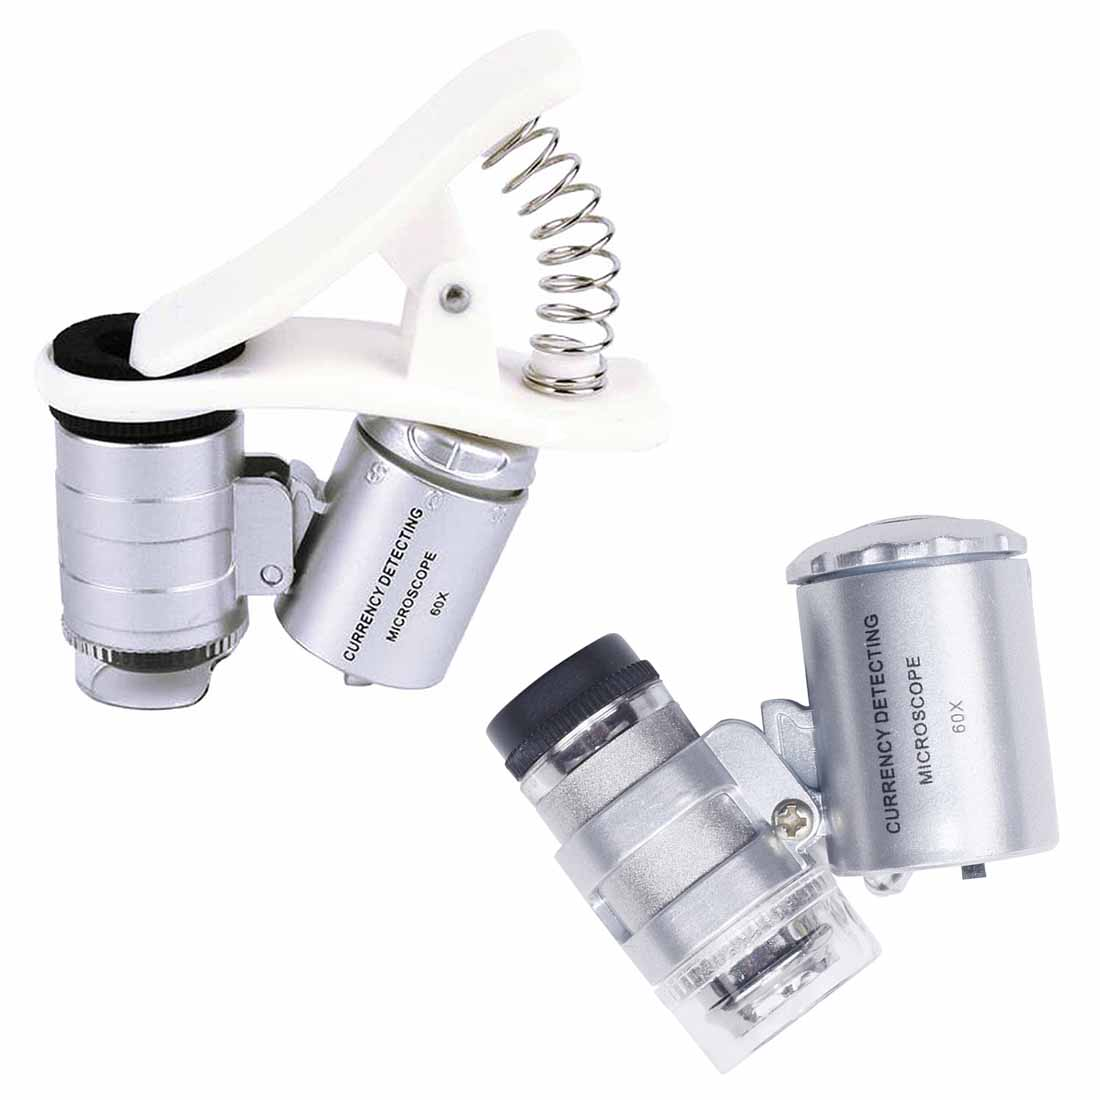 60X Magnifying Glass Universal Mobile Phone Mini Portable Clip LED Microscope Magnifier Loupe UV Currency Detector Flashlight